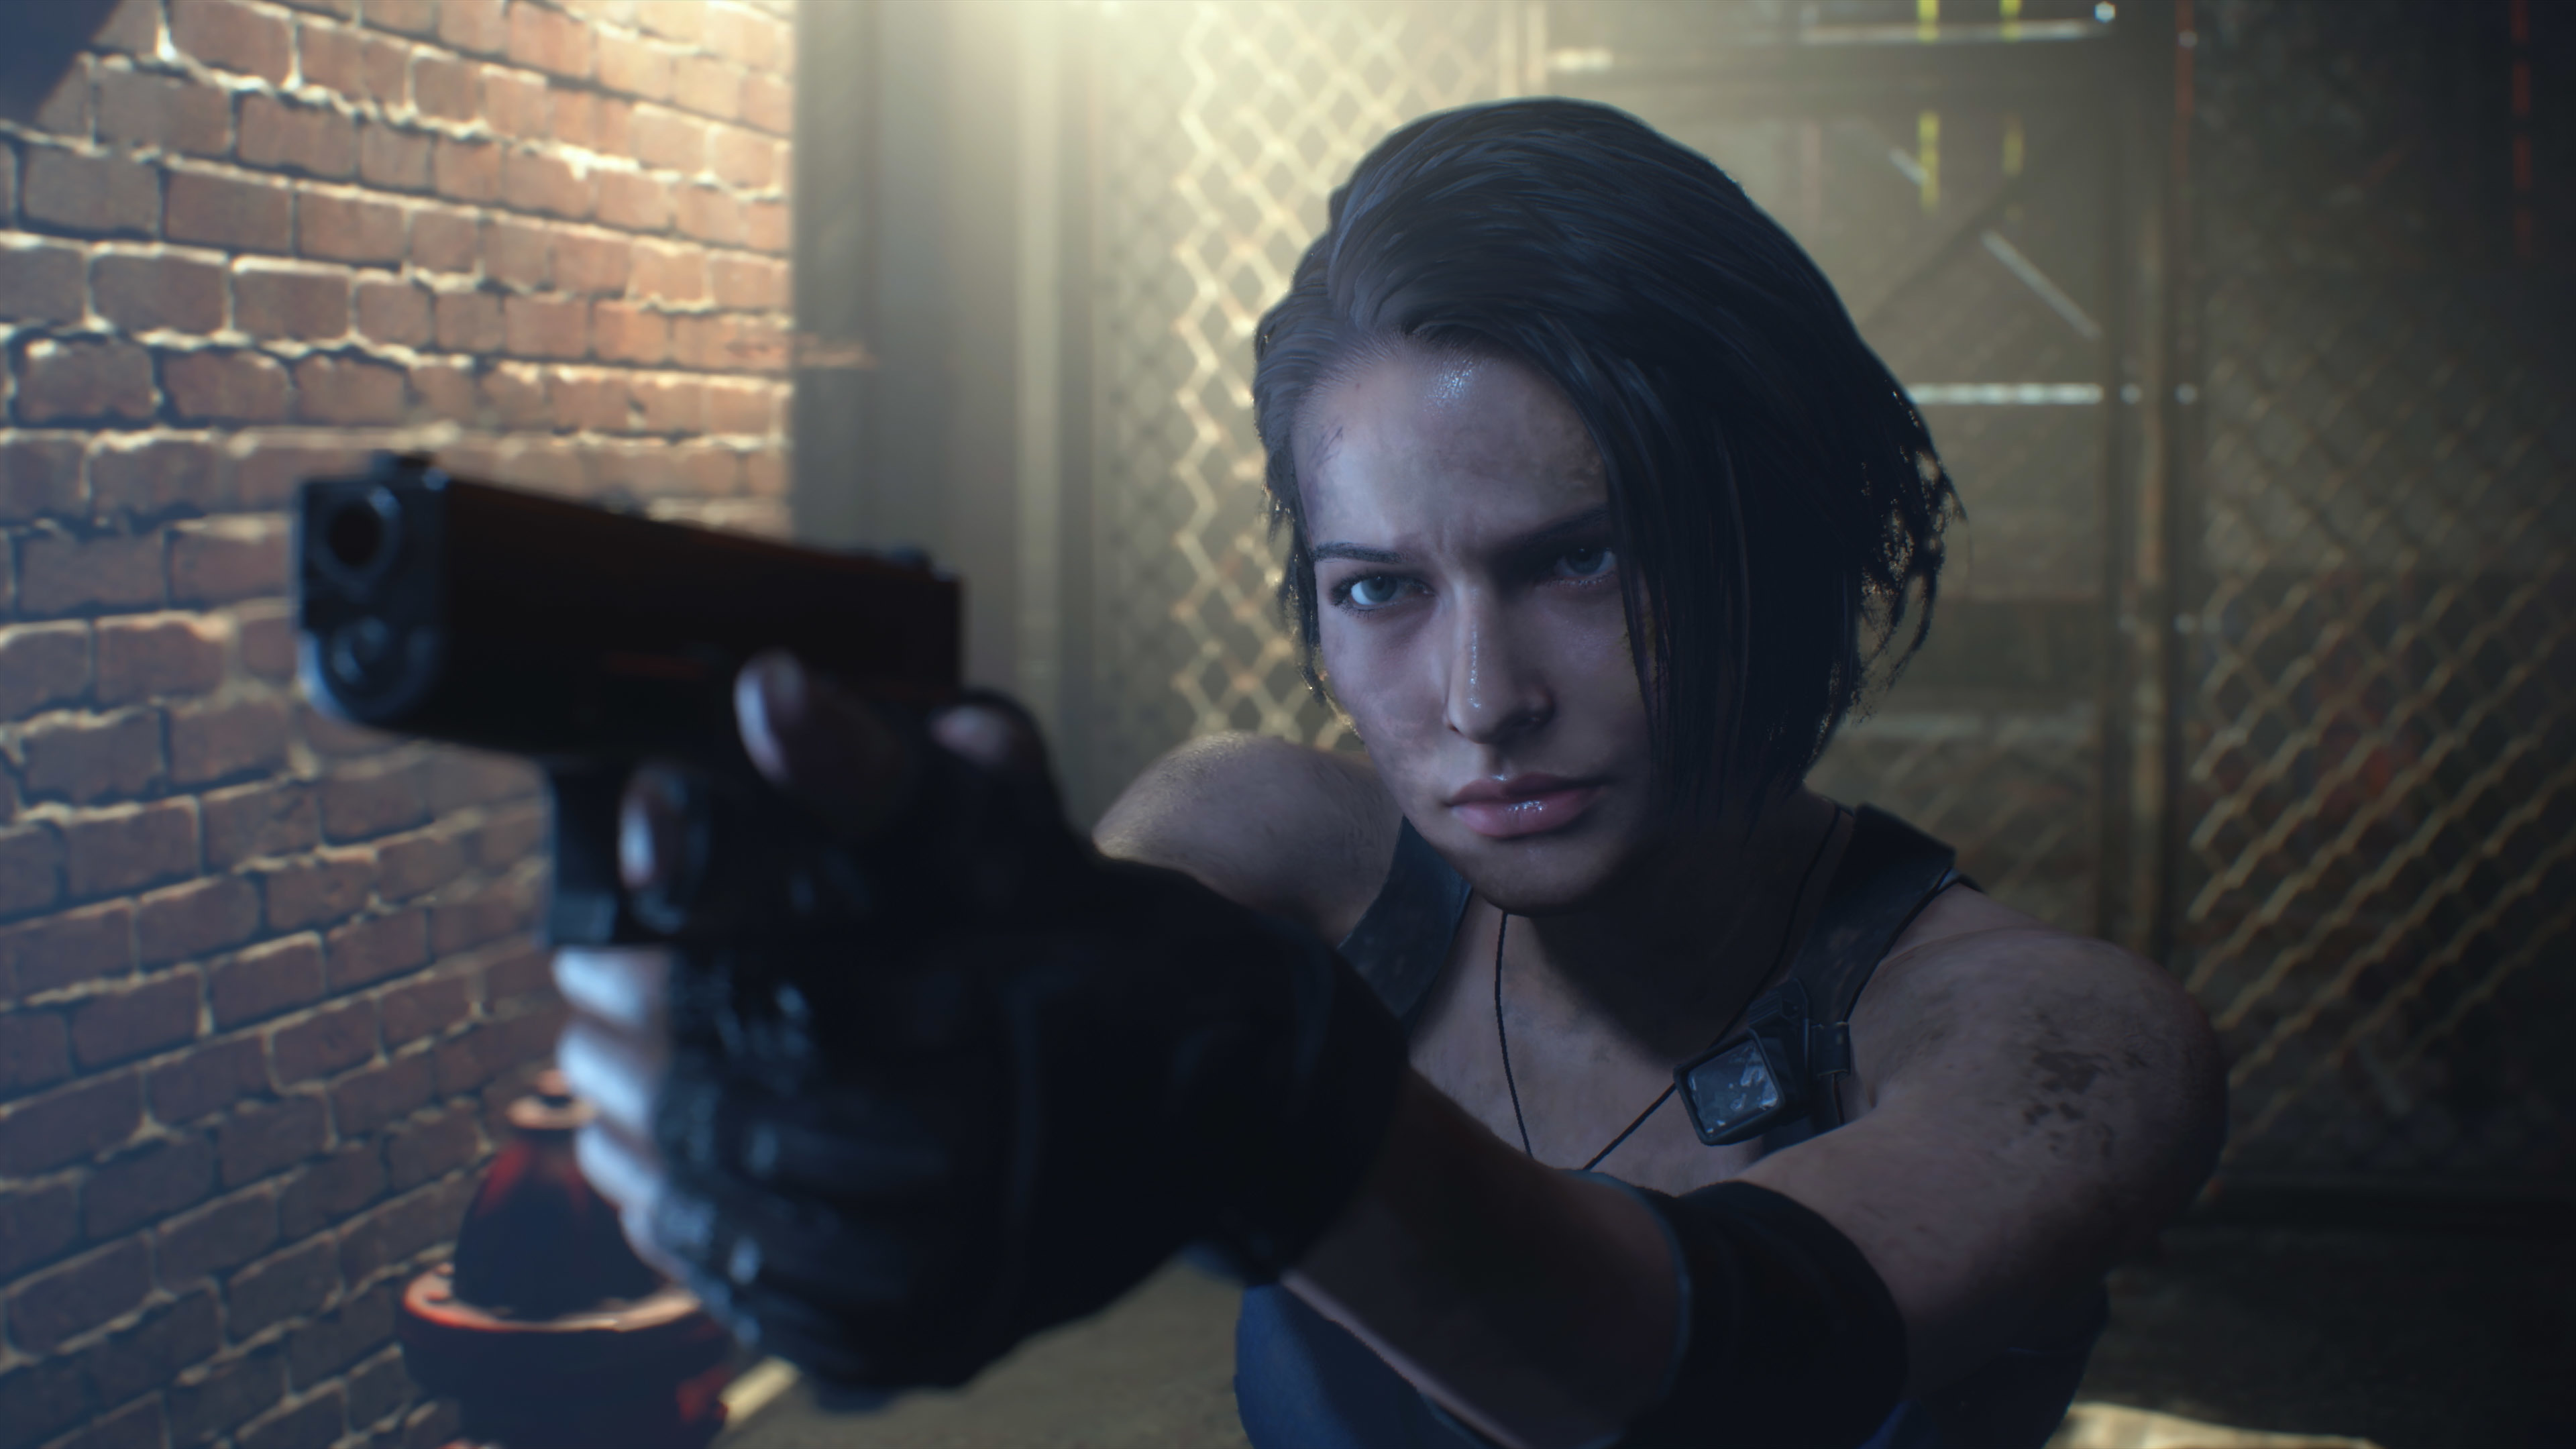 Resident Evil 3 Jill Valentine 2020 4k Hd Games 4k Wallpapers